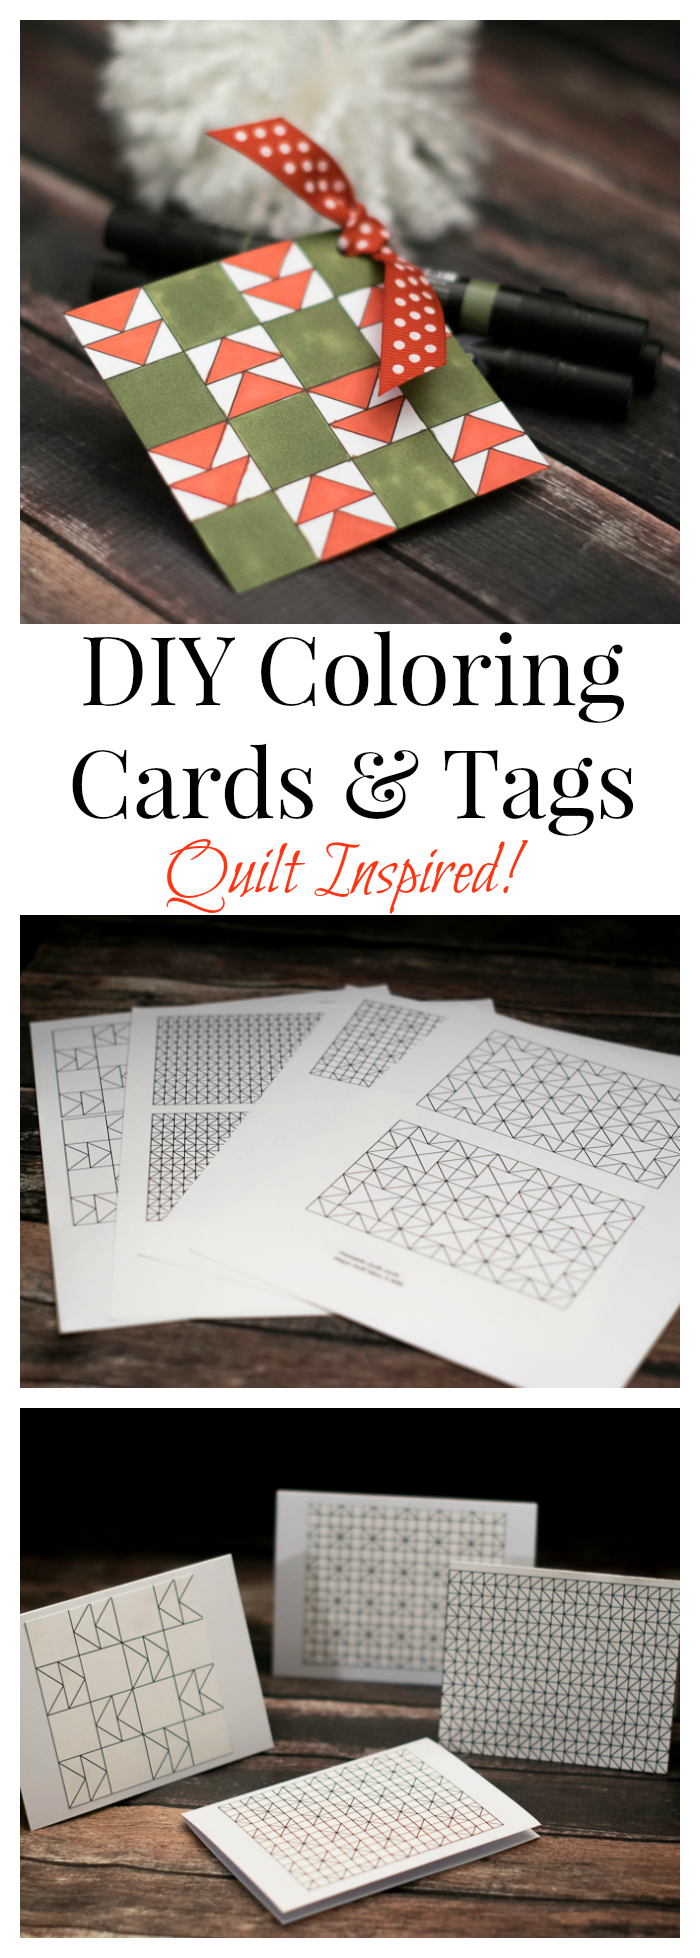 DIY Coloring Cards  Tags